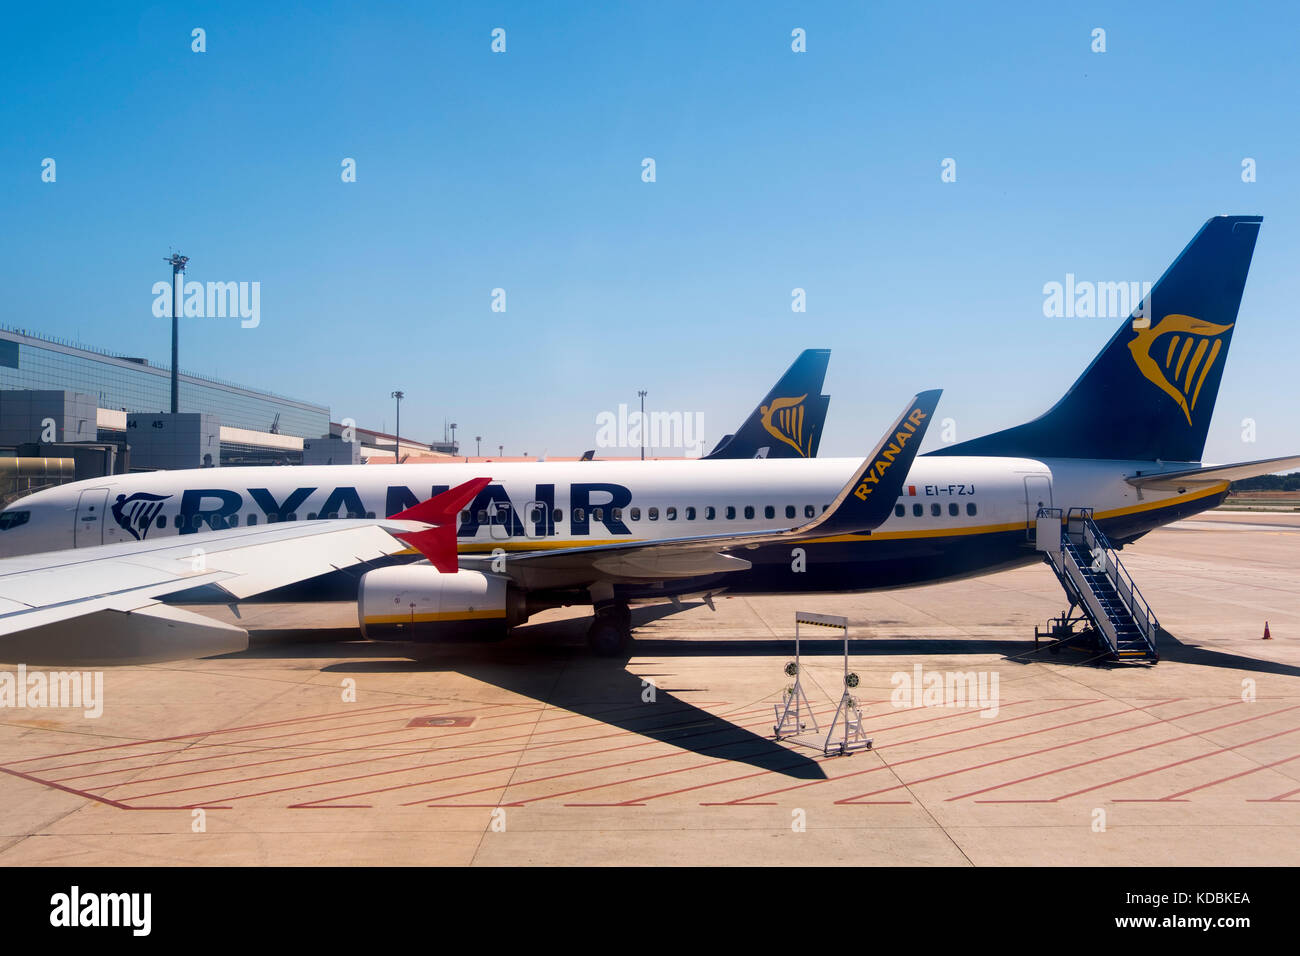 A Ryanair passenger plane at Malaga international airport Pablo Ruiz Picasso. Costa del Sol, Andalusia. Southern - Stock Image